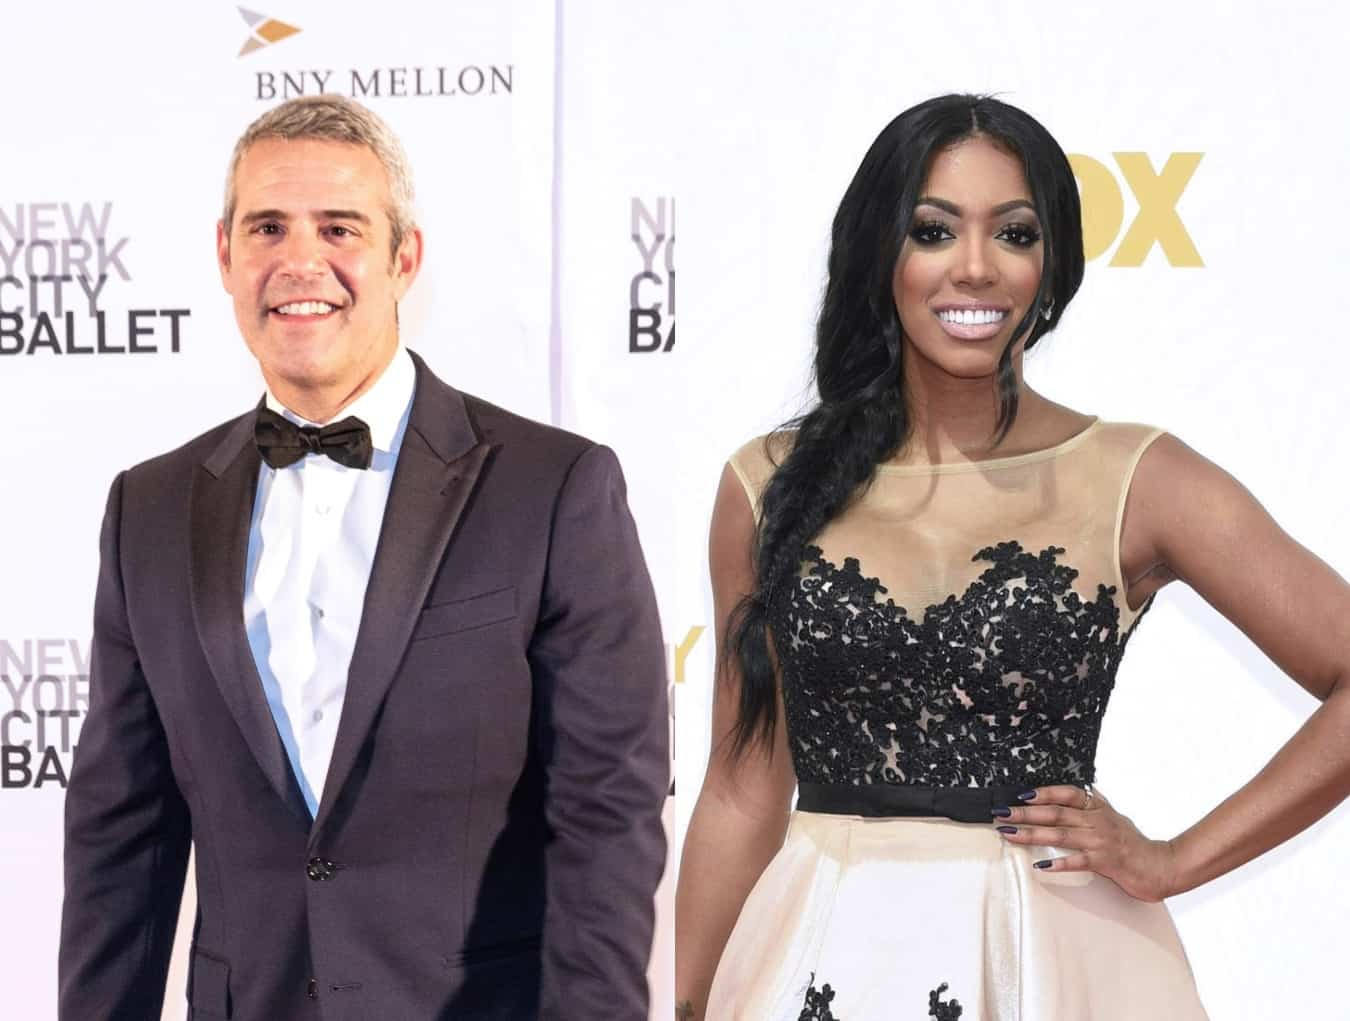 Andy Cohen Reveals the Text He Sent Porsha Williams After Engagement, Teases RHOP Season 6 and Talks BravoCon Tickets, Plus Why He Doesn't Like the Name Summer House Winter Charm